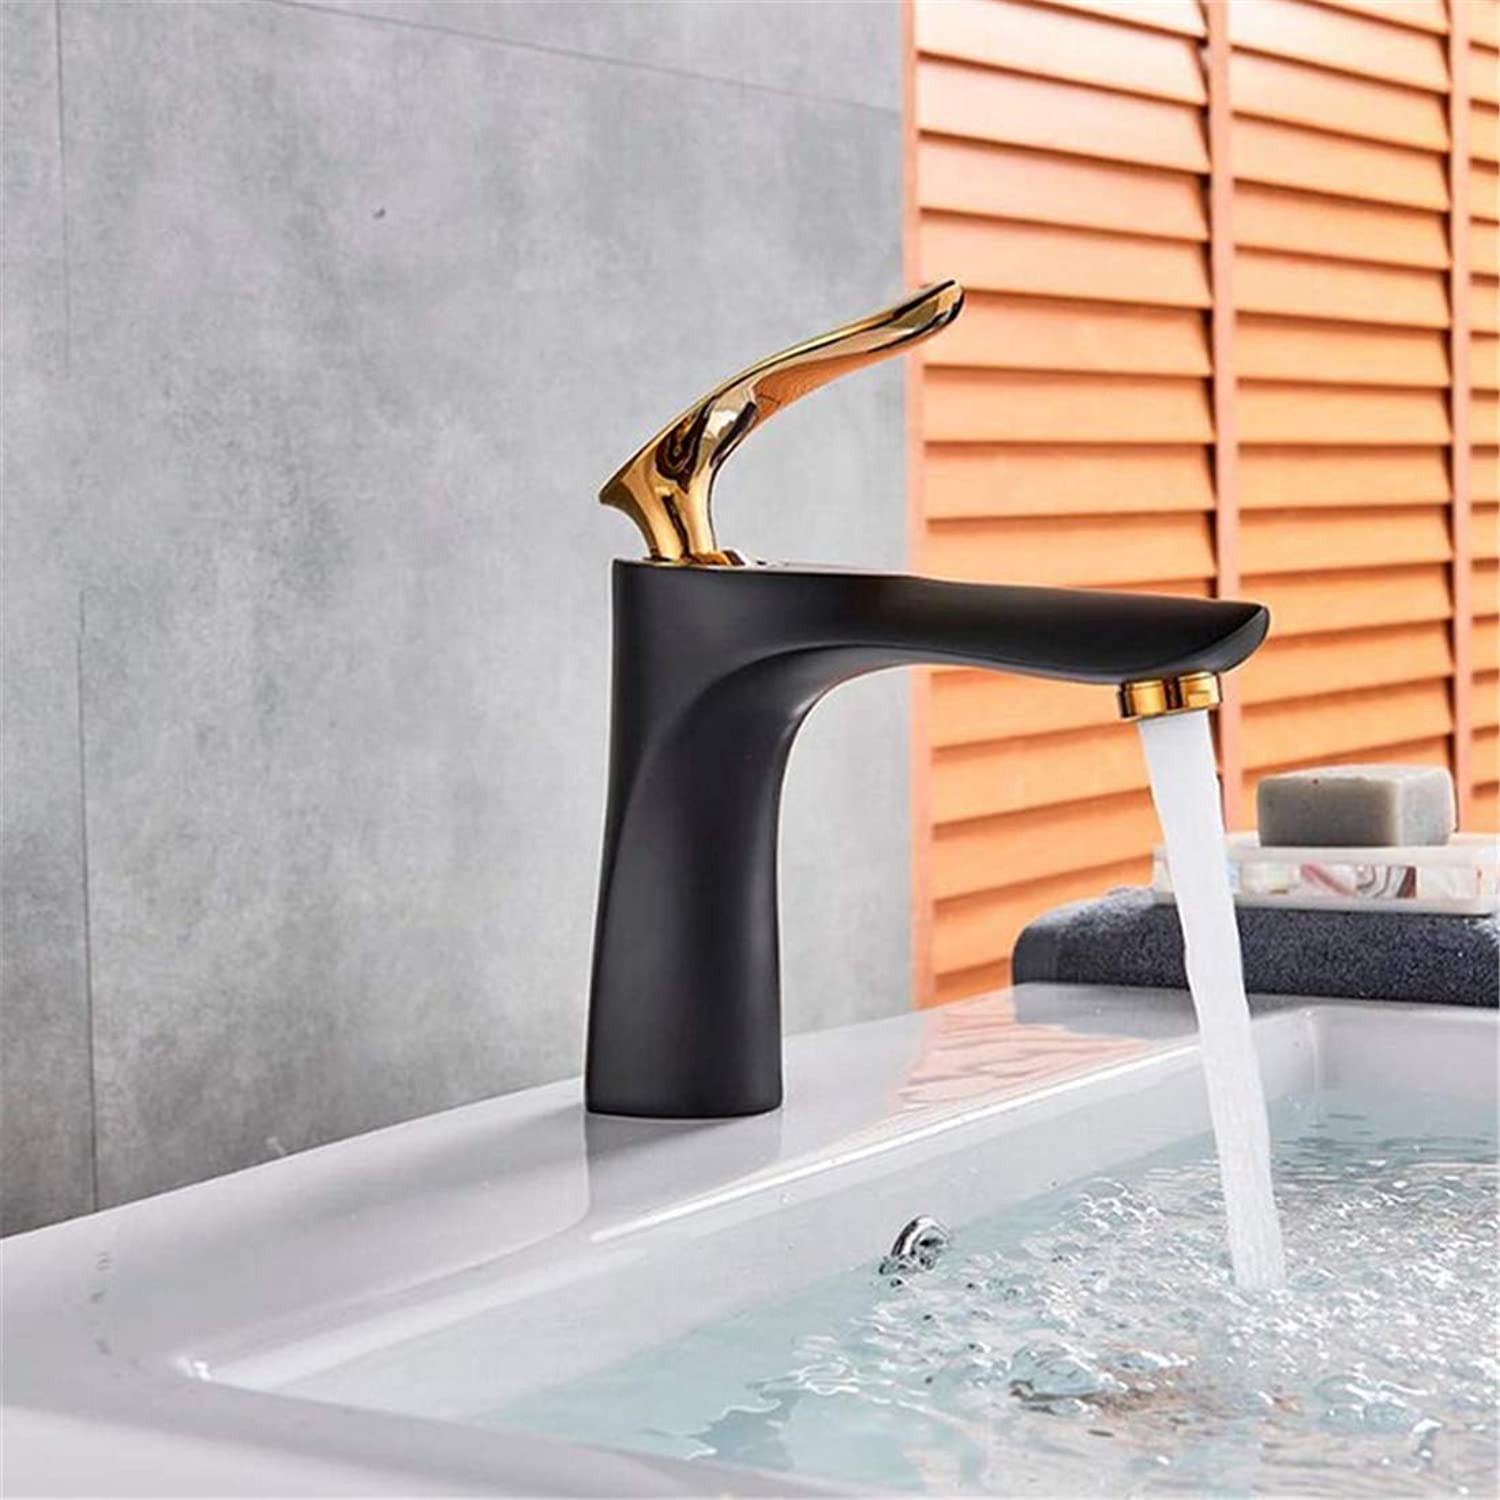 Retro Faucetwashbasin Mixer Single Hole Bathroom Basin Sink Faucet